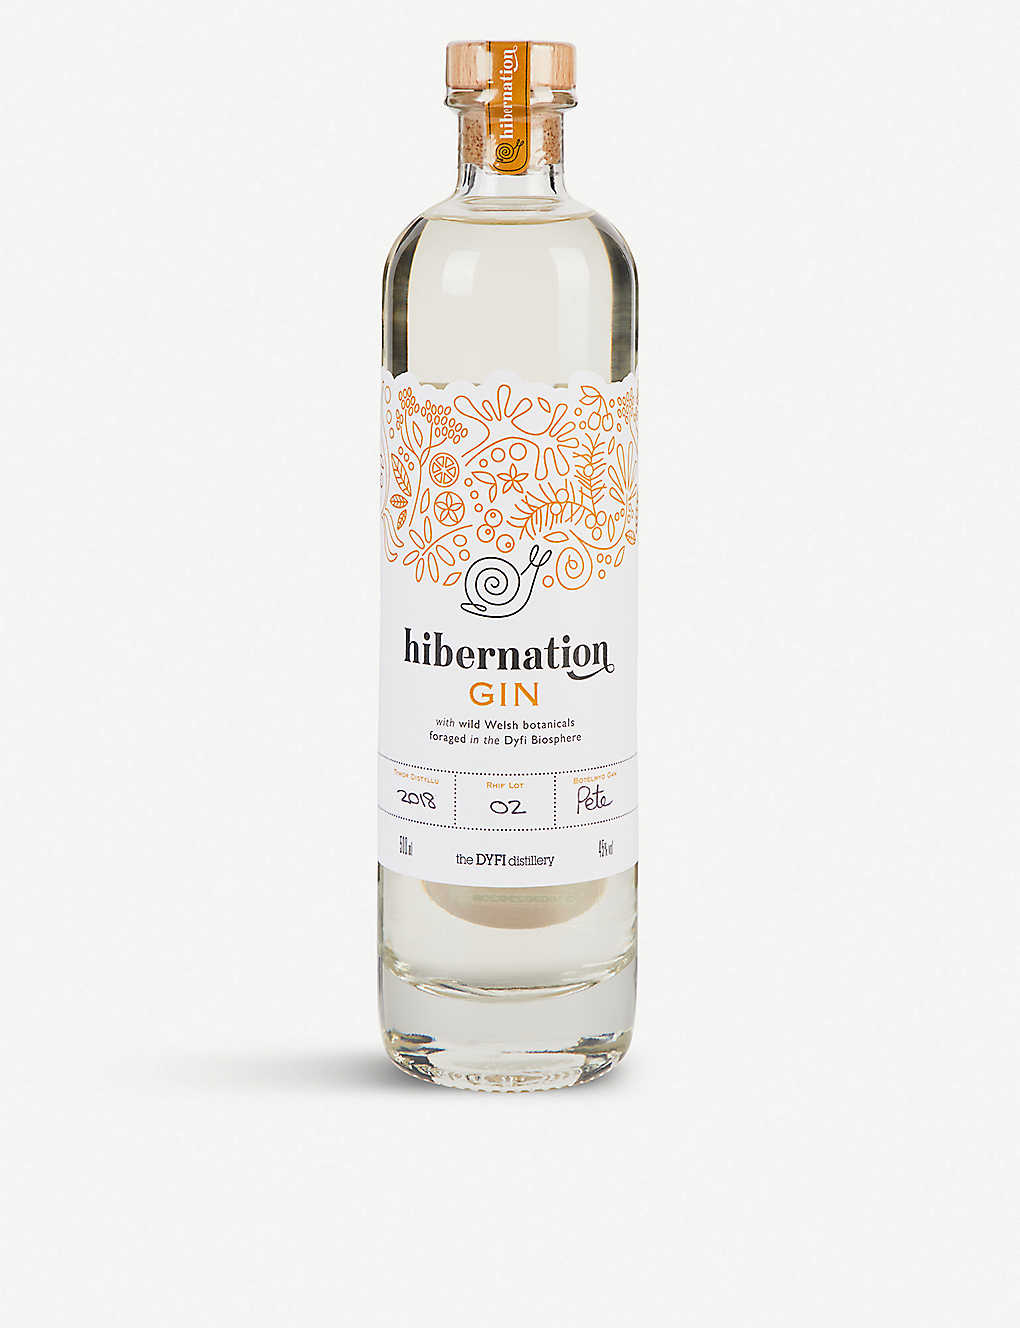 GIN: Dyfi Distillery Hibernation gin 700ml